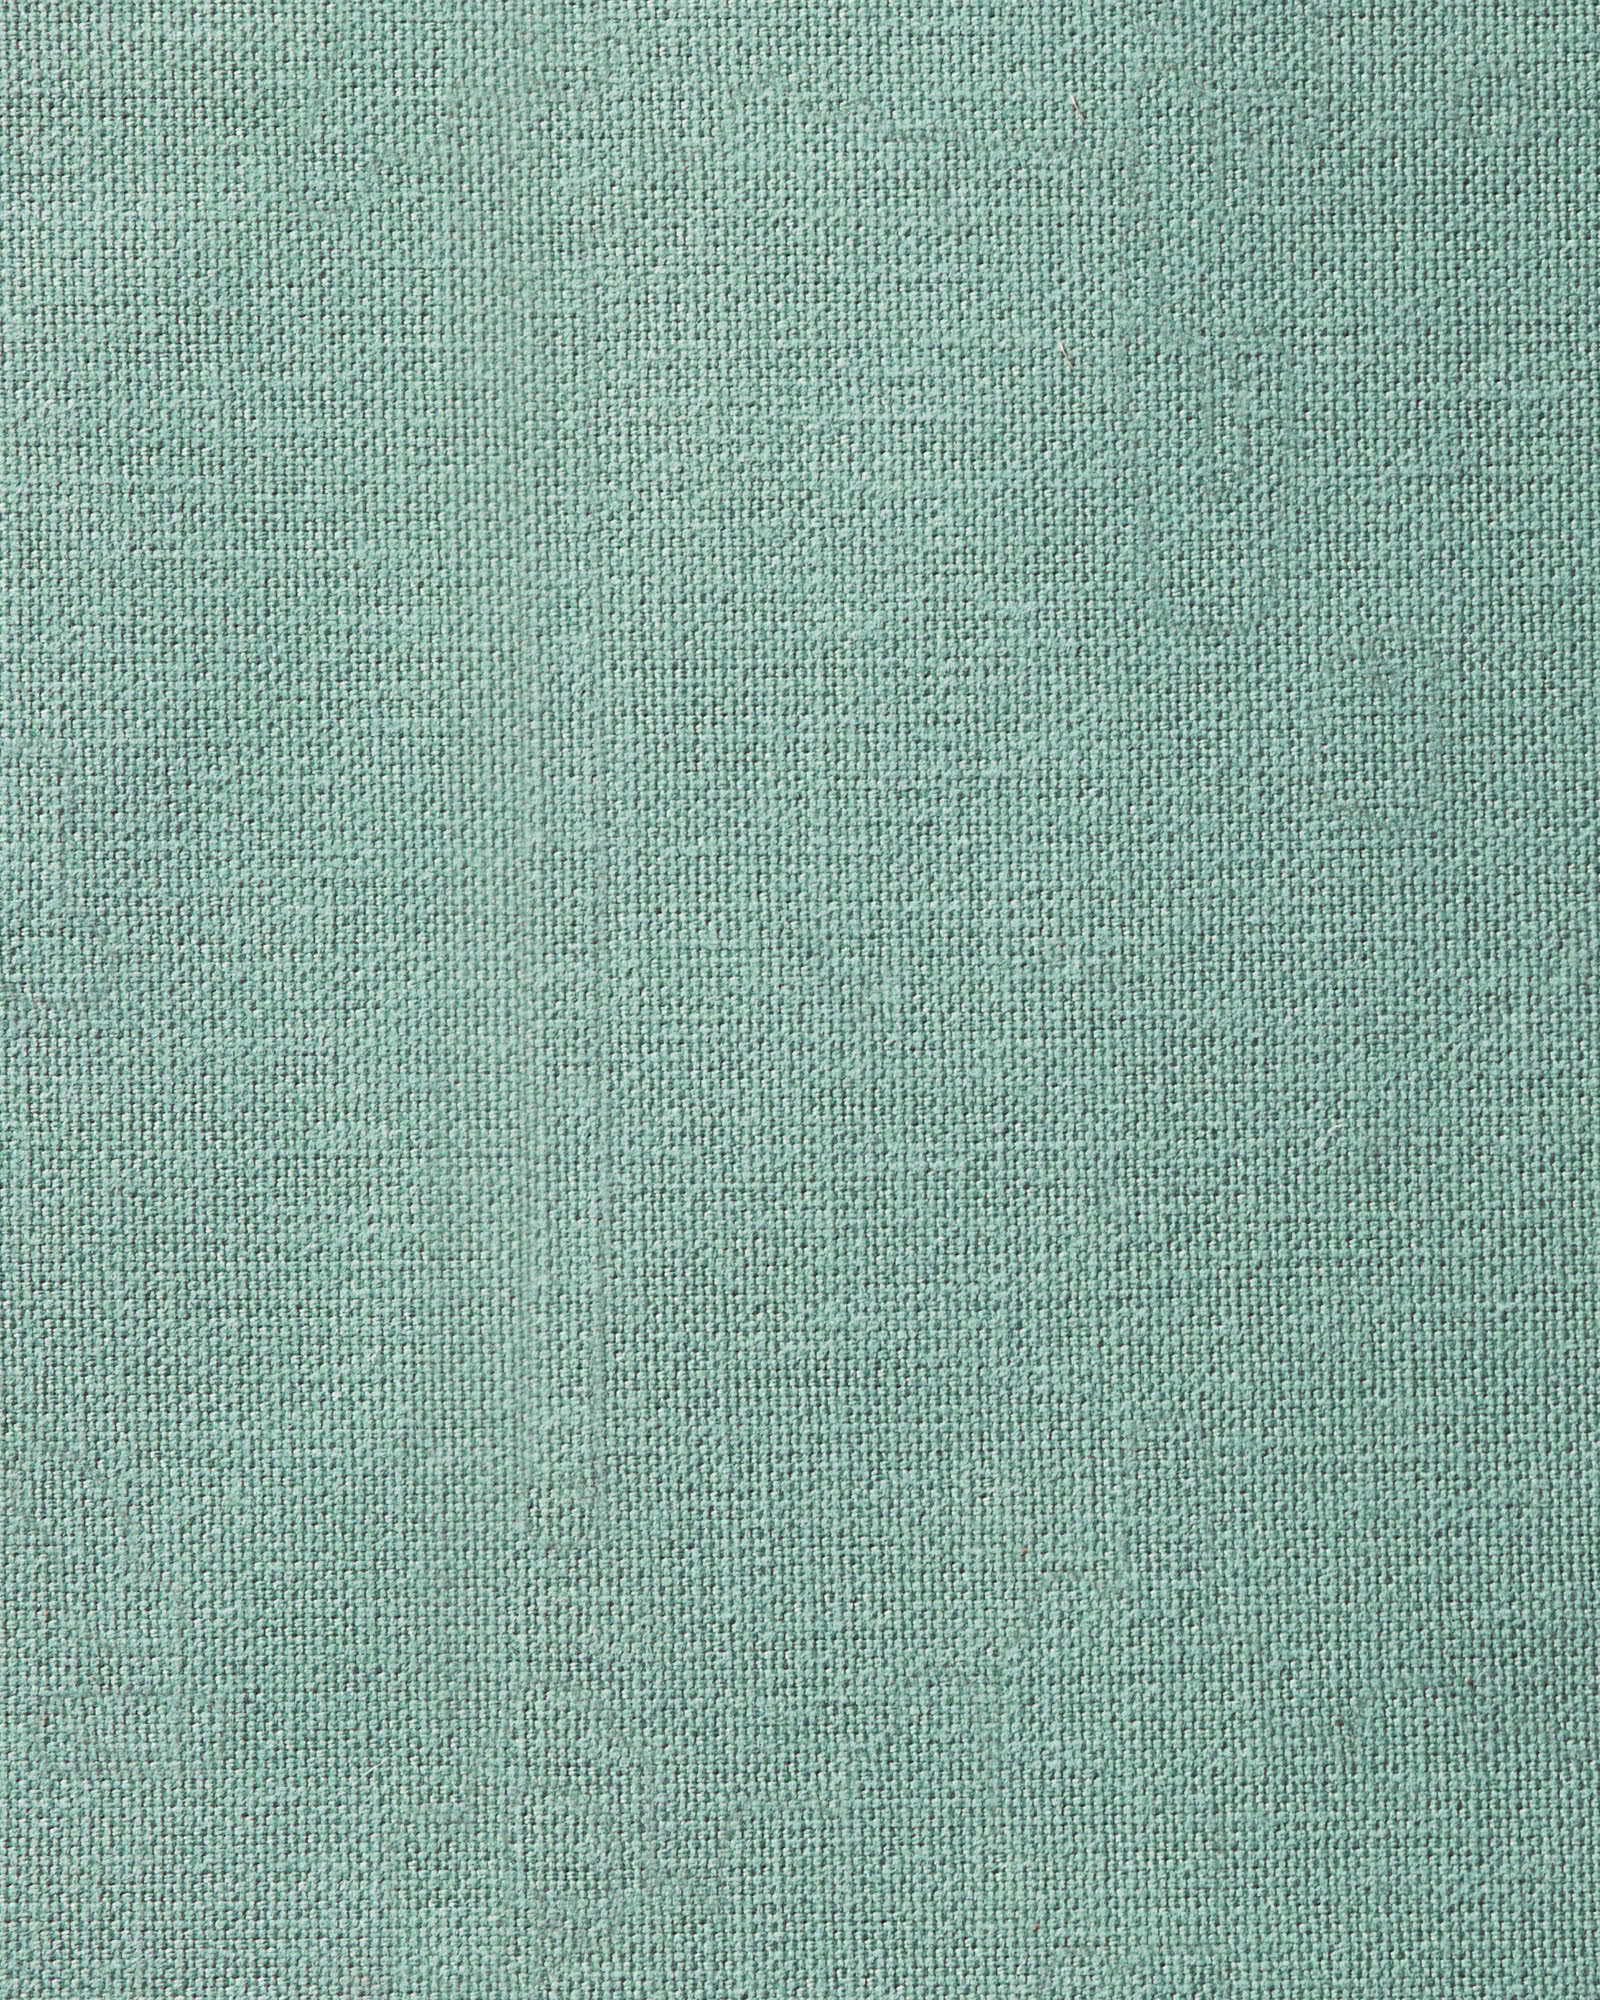 Brushed Cotton Canvas - Oasis